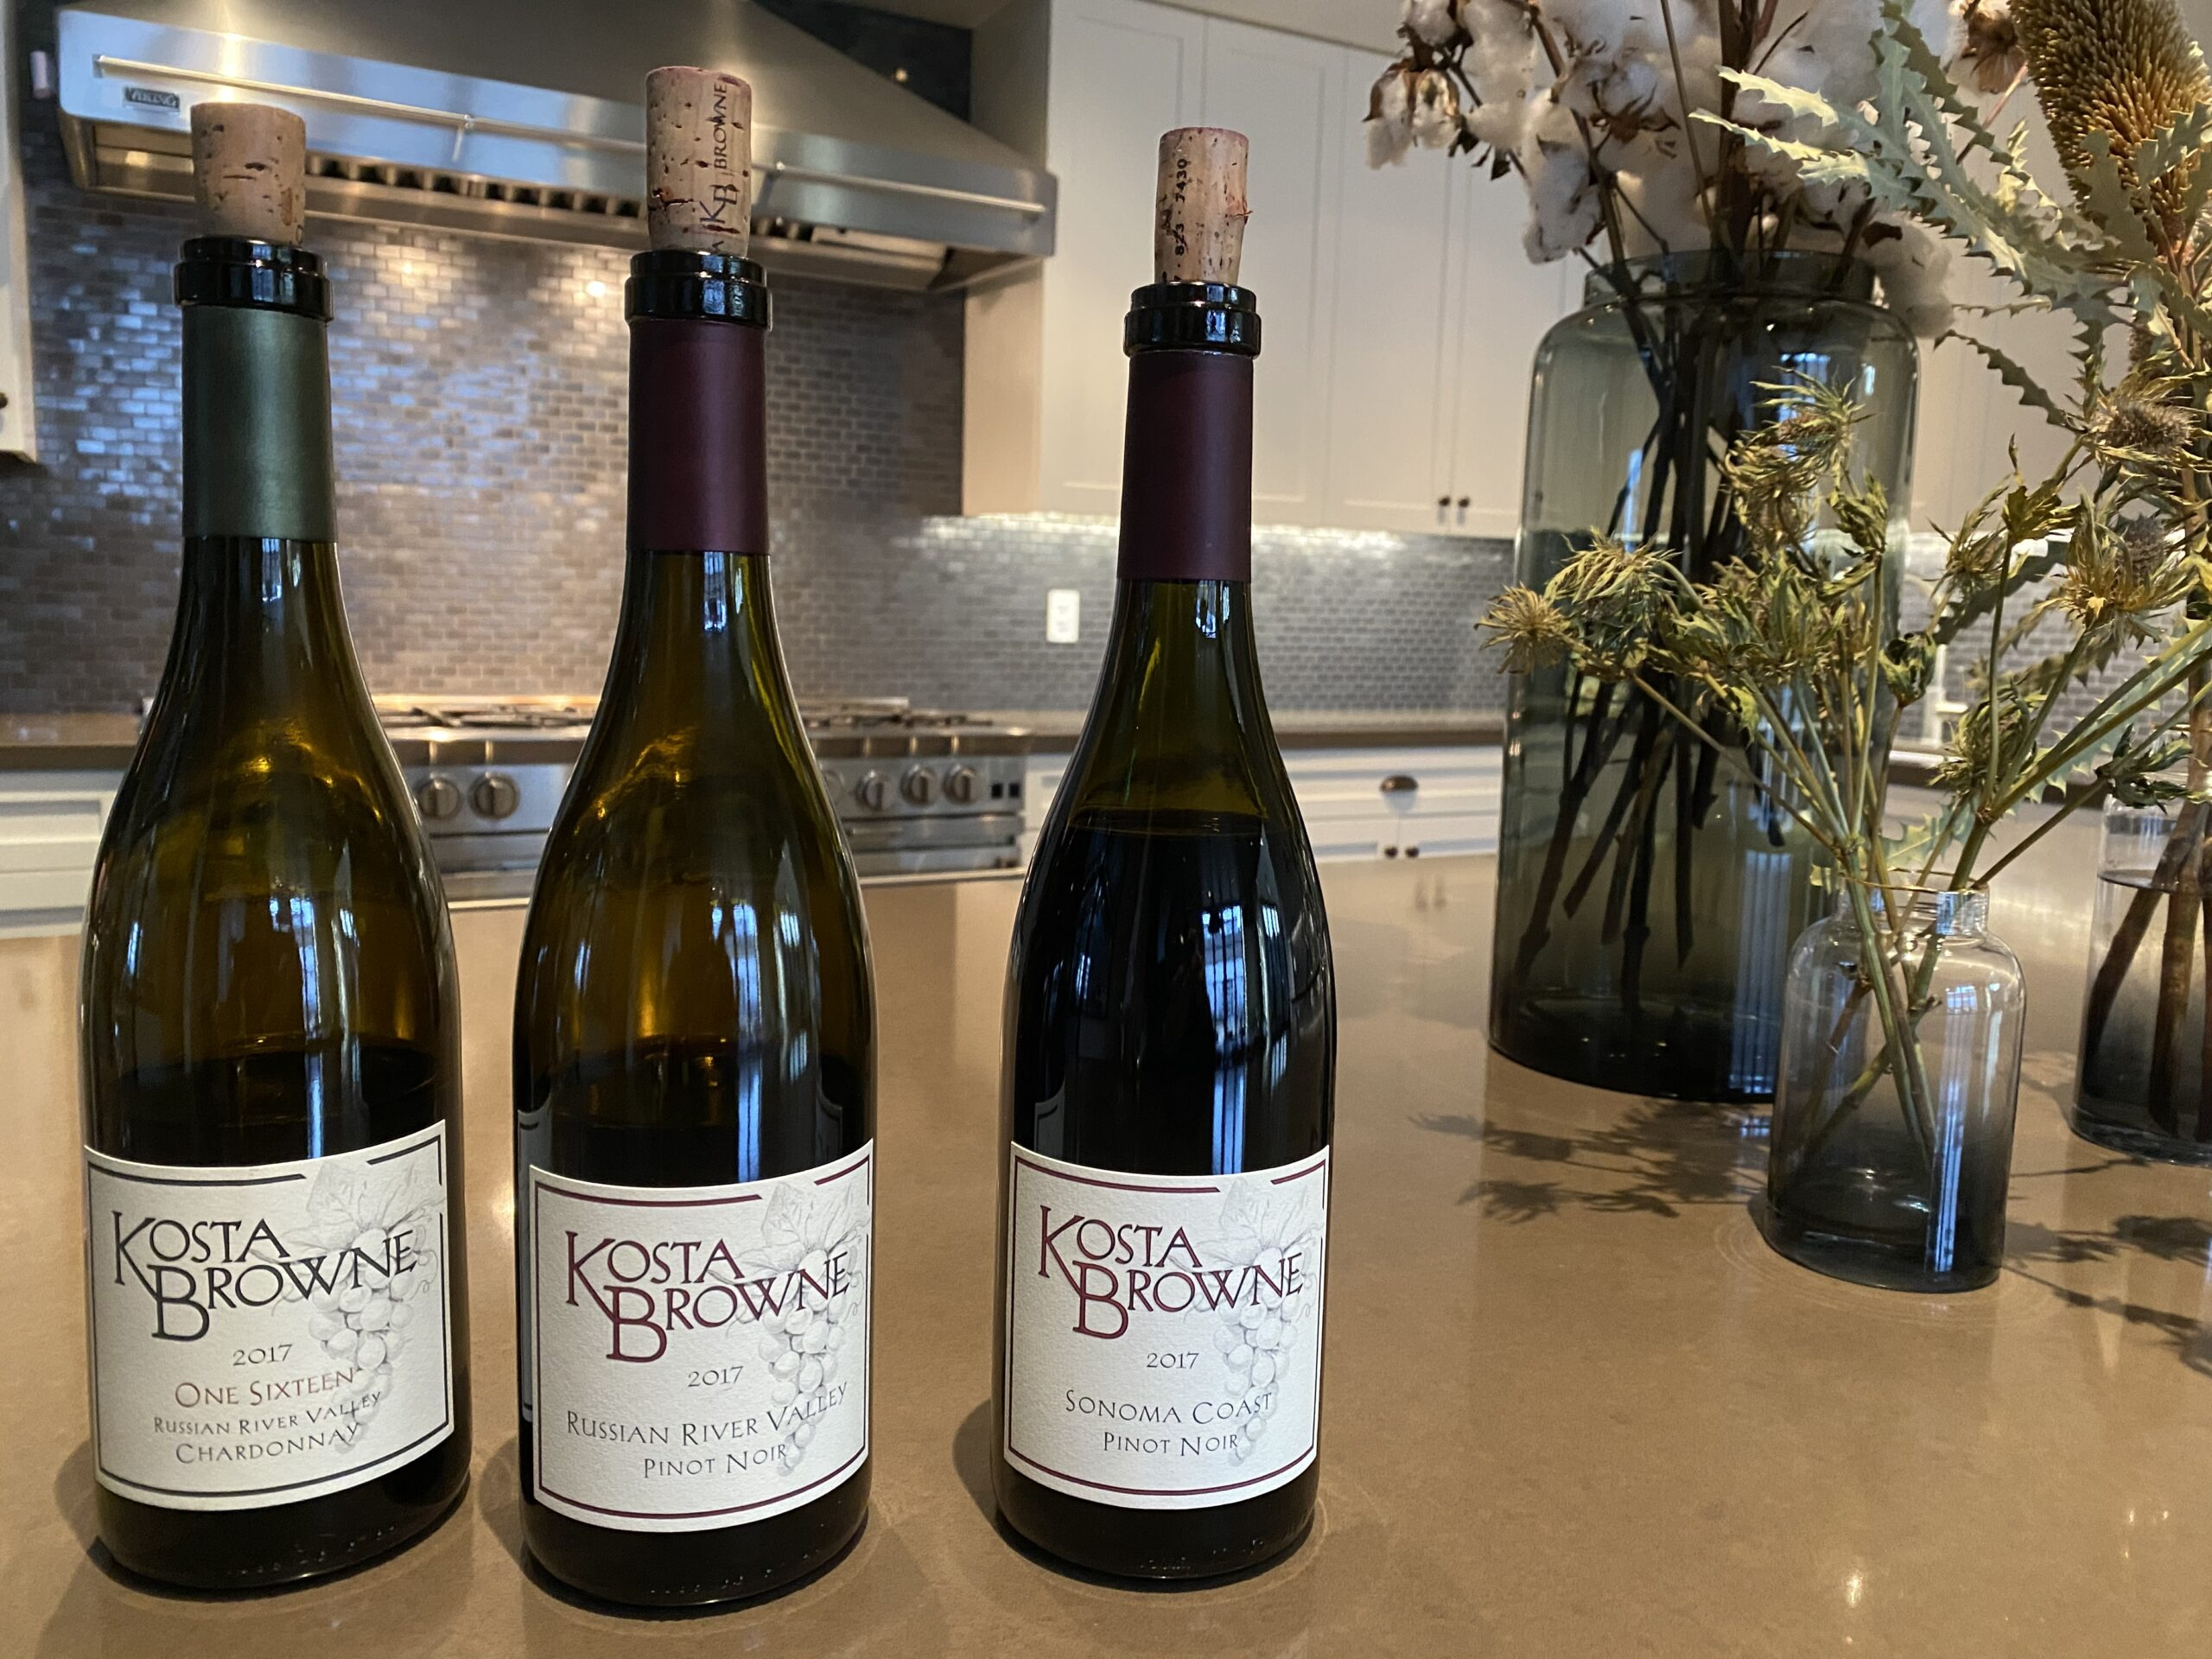 30 Wineries in 30 Days – Day 25: Kosta Browne